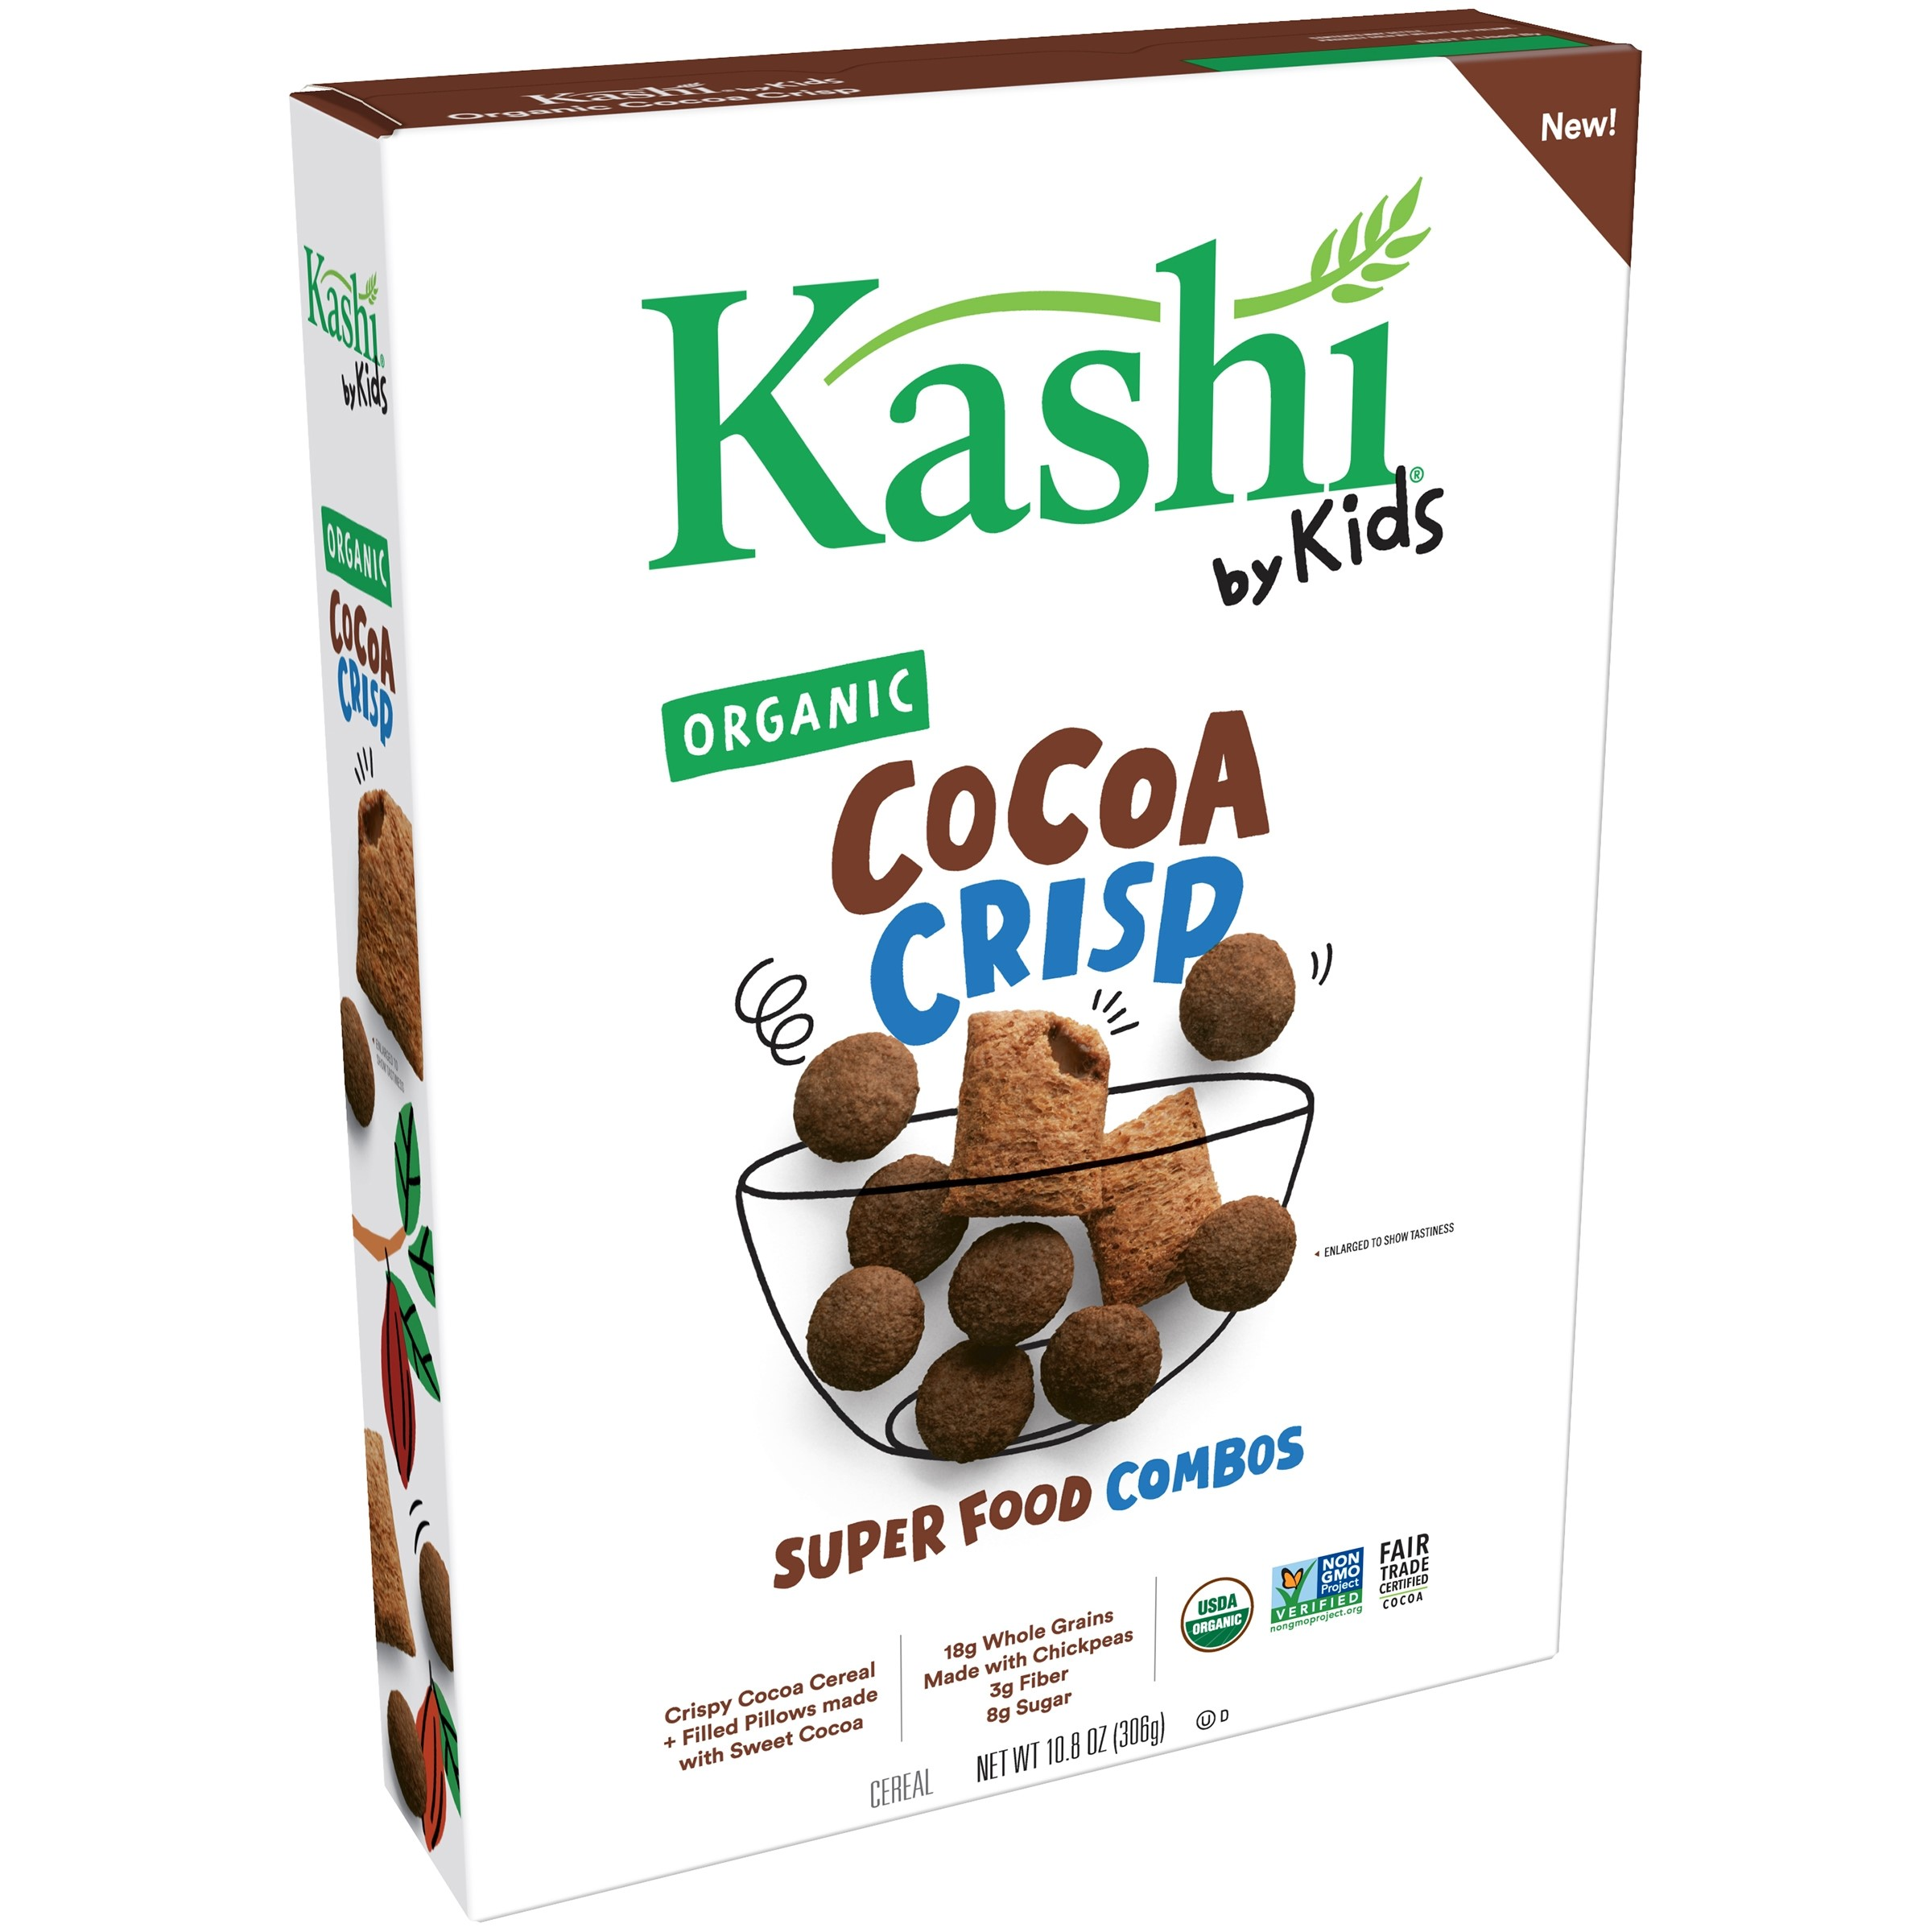 Kashi by Kids Super Food Combos Organic Cocoa Crisp Cereal 10.8 oz